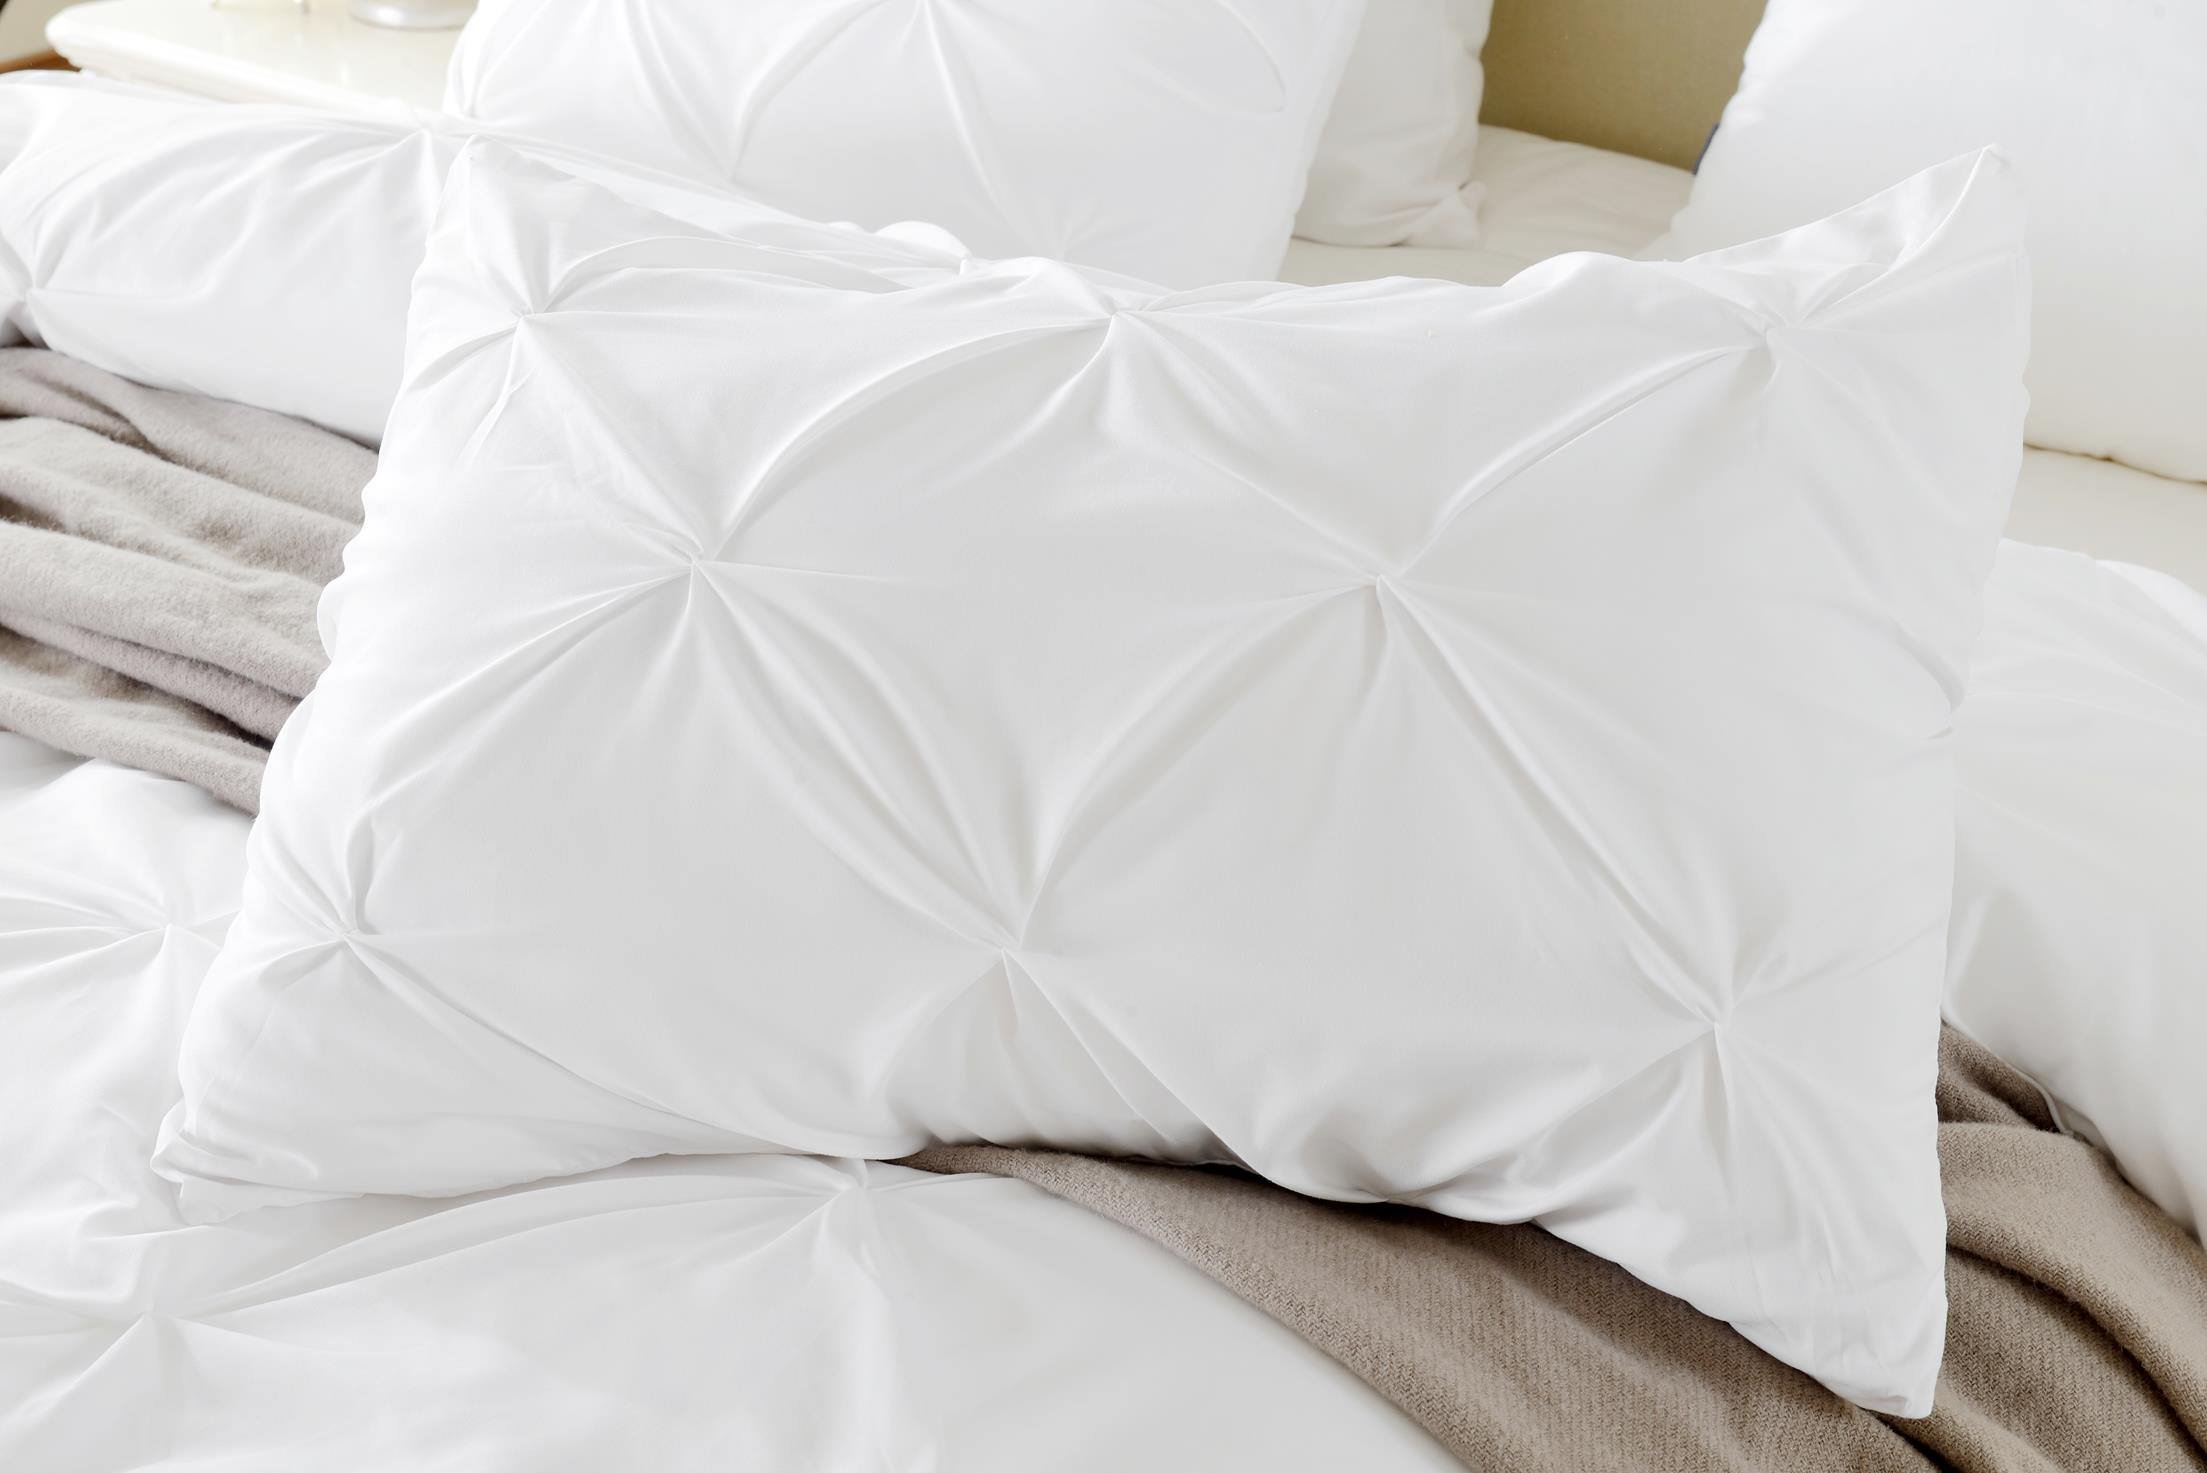 Reliable Bedding Soft Luxurious 3-Piece Pinch Pleated Duvet Cover Set Highest Quality 100% Egyptian Cotton 800 TC Stain Resistant Luxurious & Hypoallergenic Comforter Cover !!! (Silver!!Twin/Twin Xl) by RELIABLE BEDDING (Image #4)